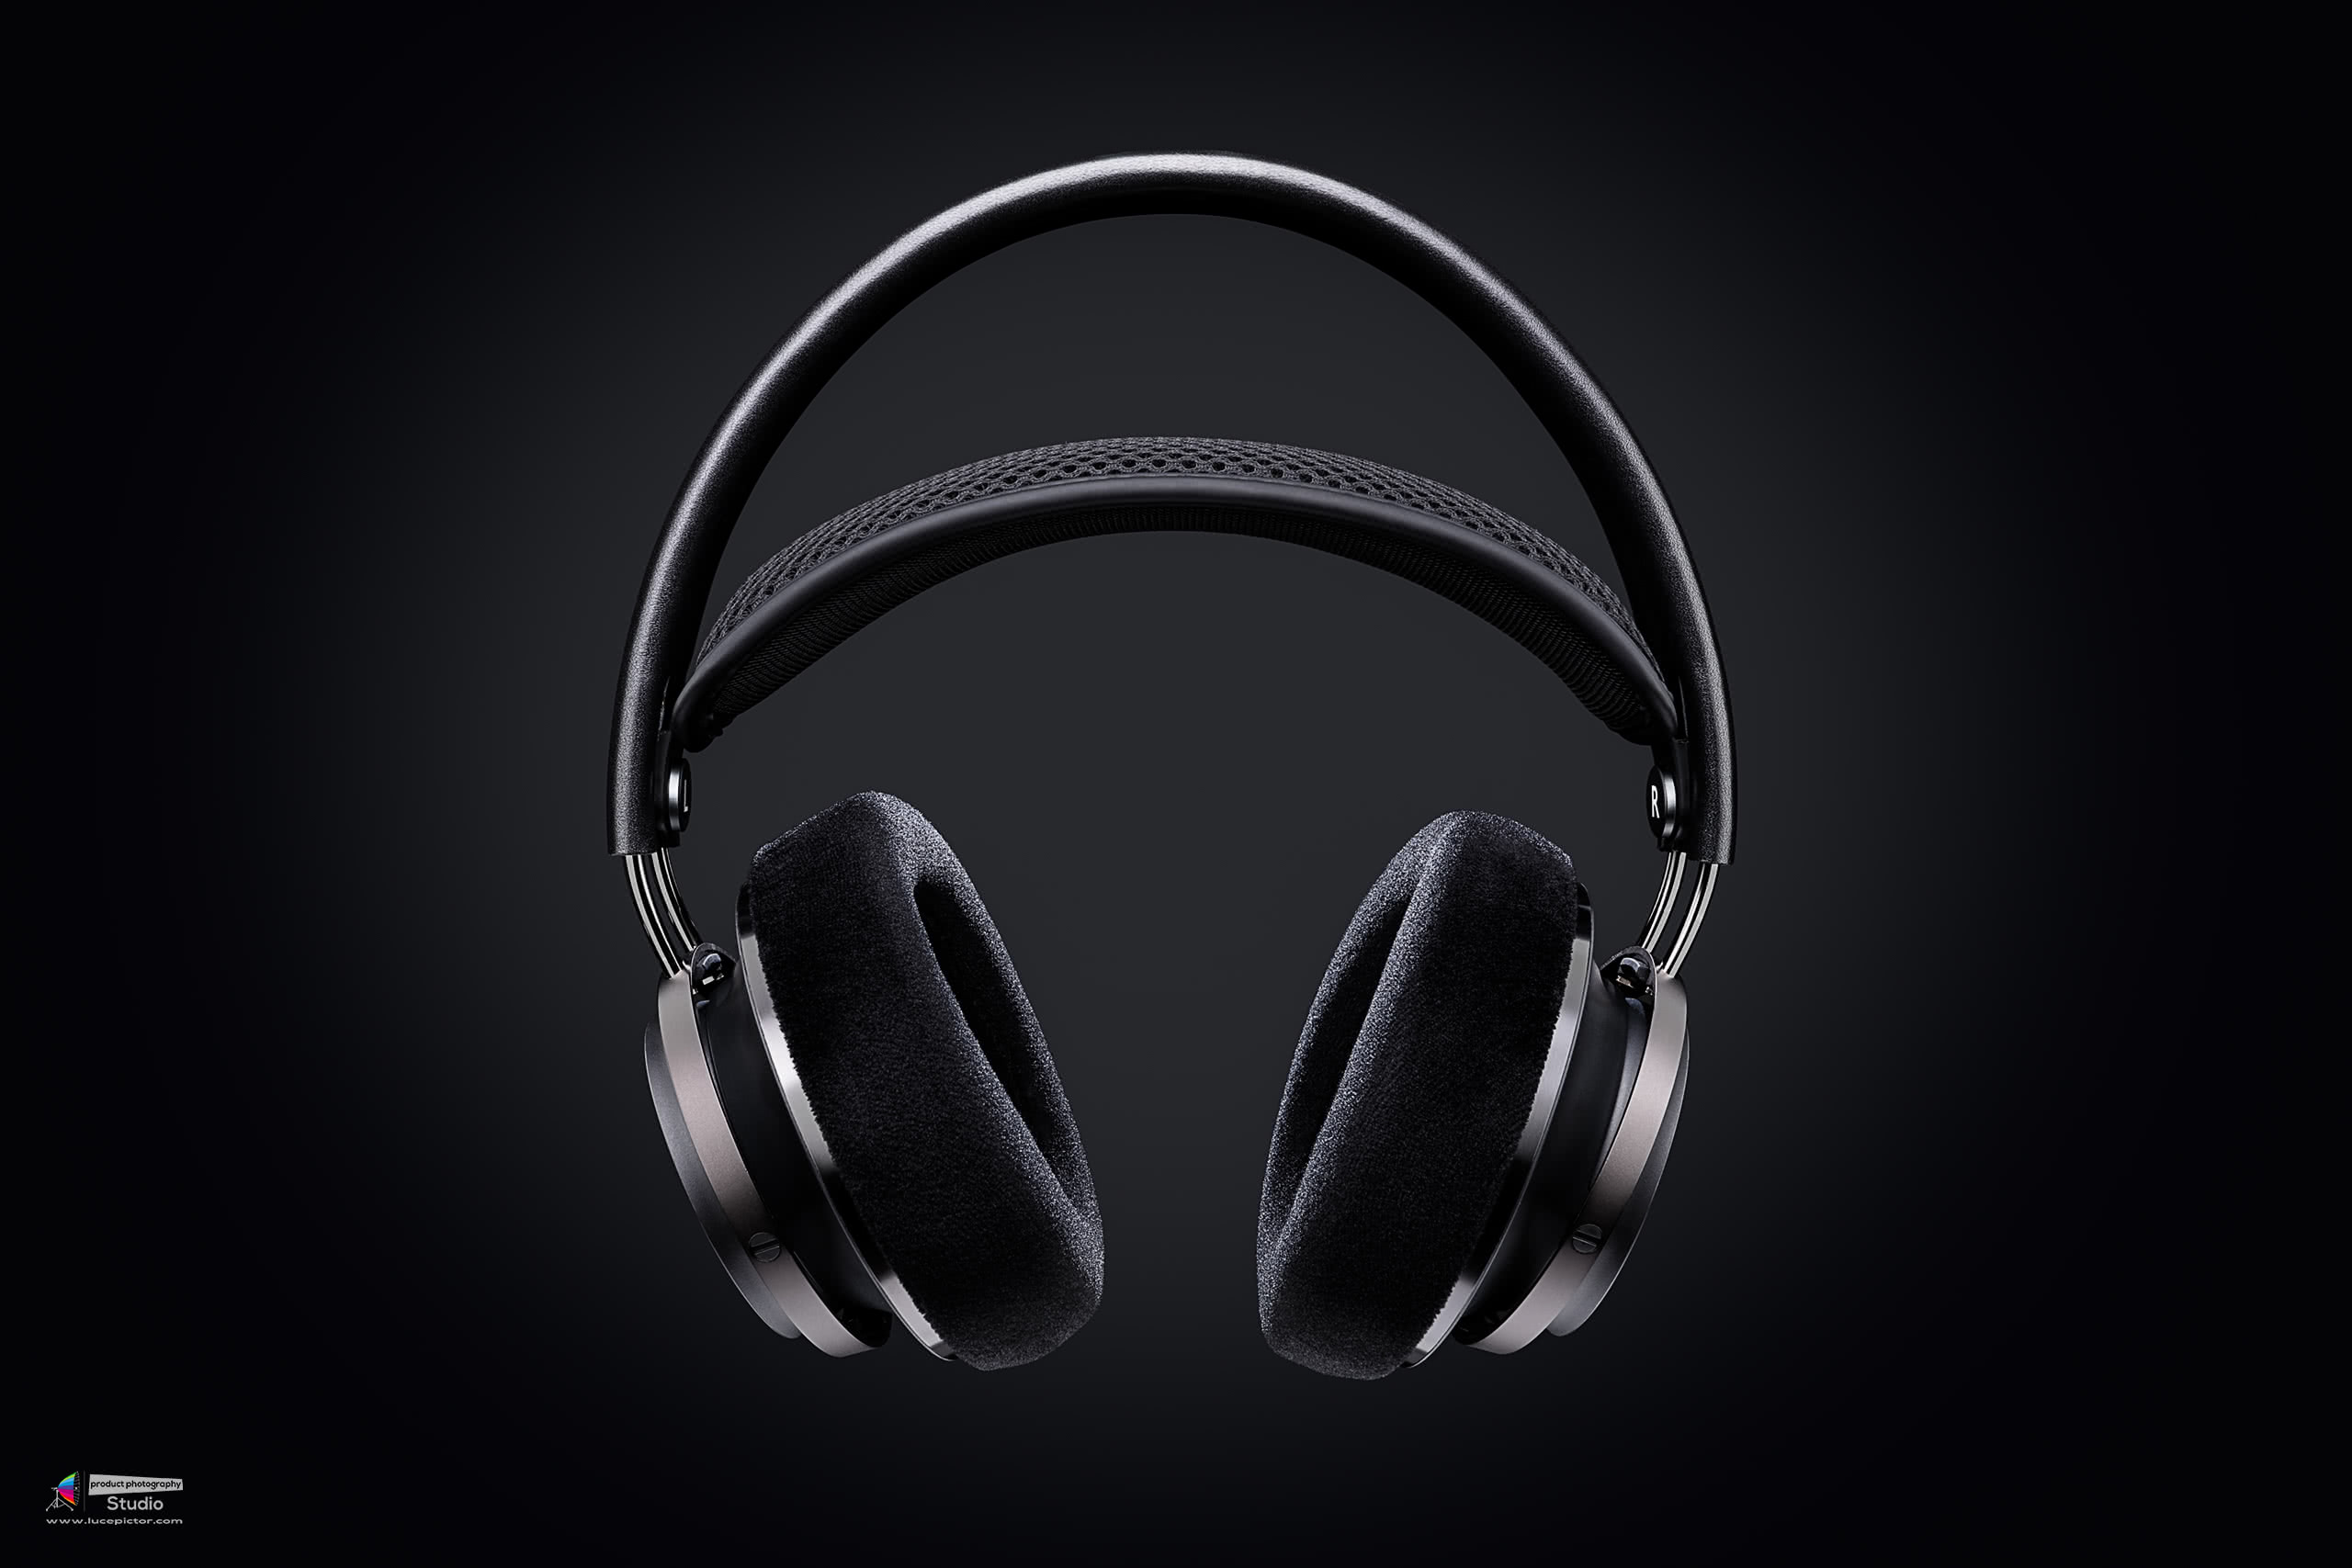 Philips Fidelio X2 headphones